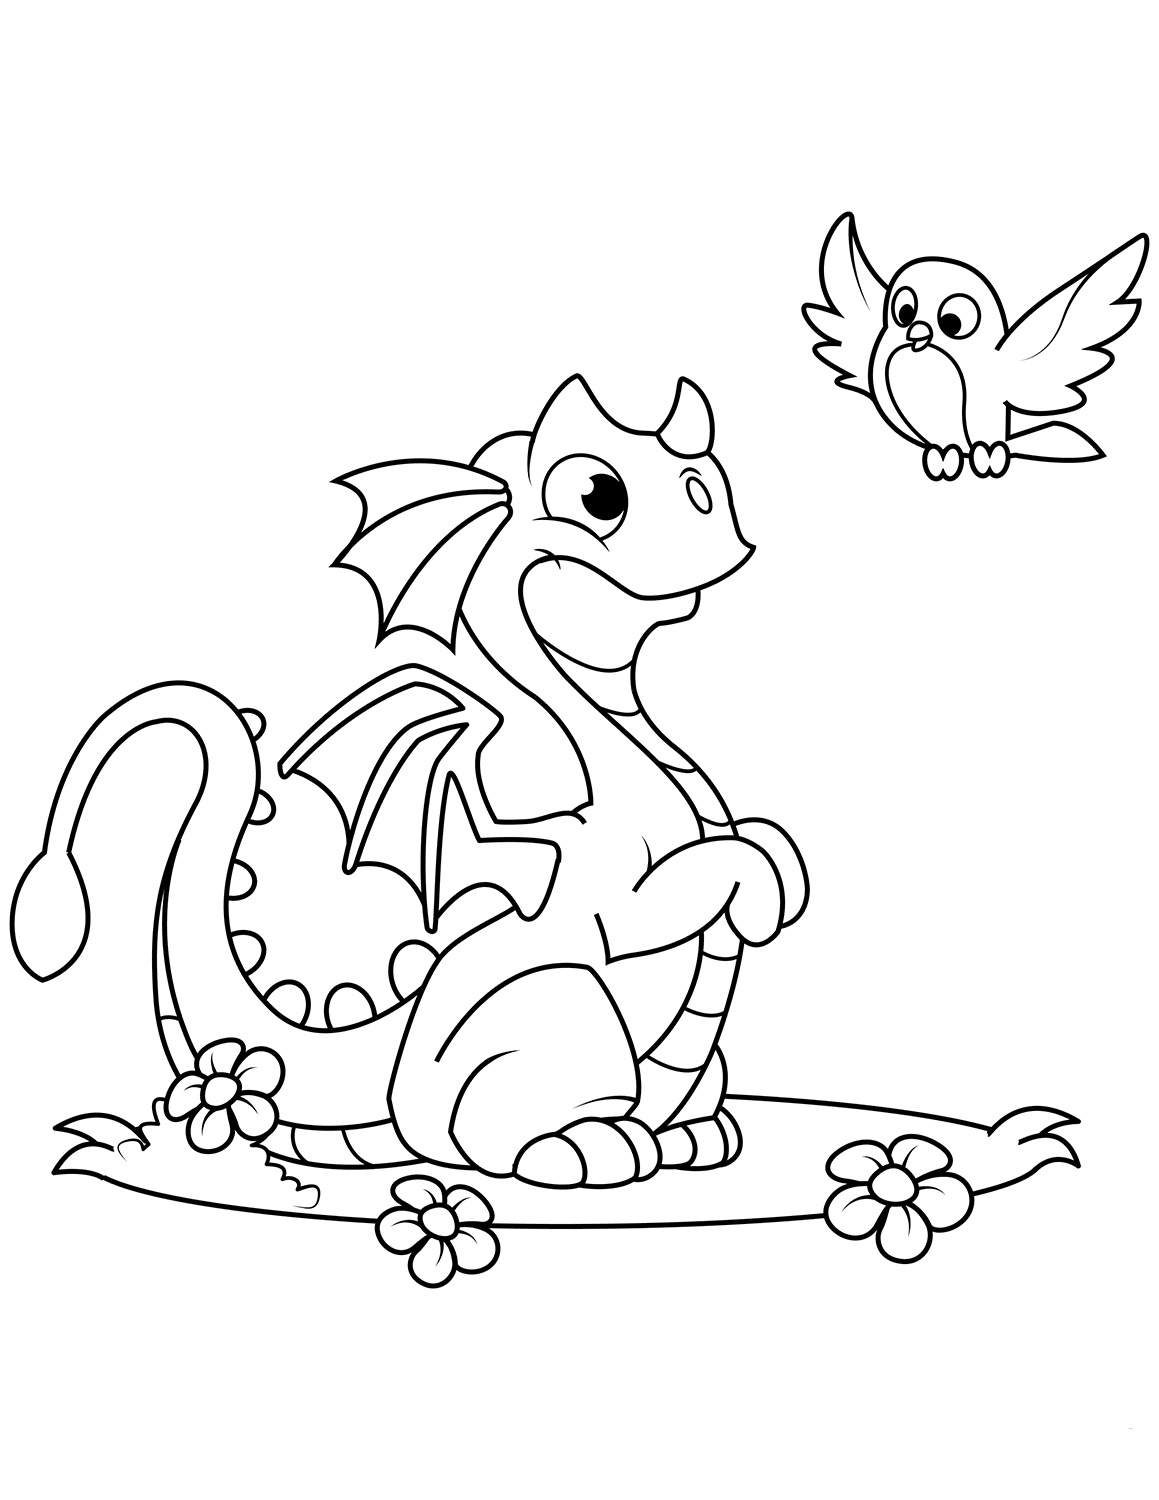 dragon pictures to color and print 35 free printable dragon coloring pages print and color pictures dragon to